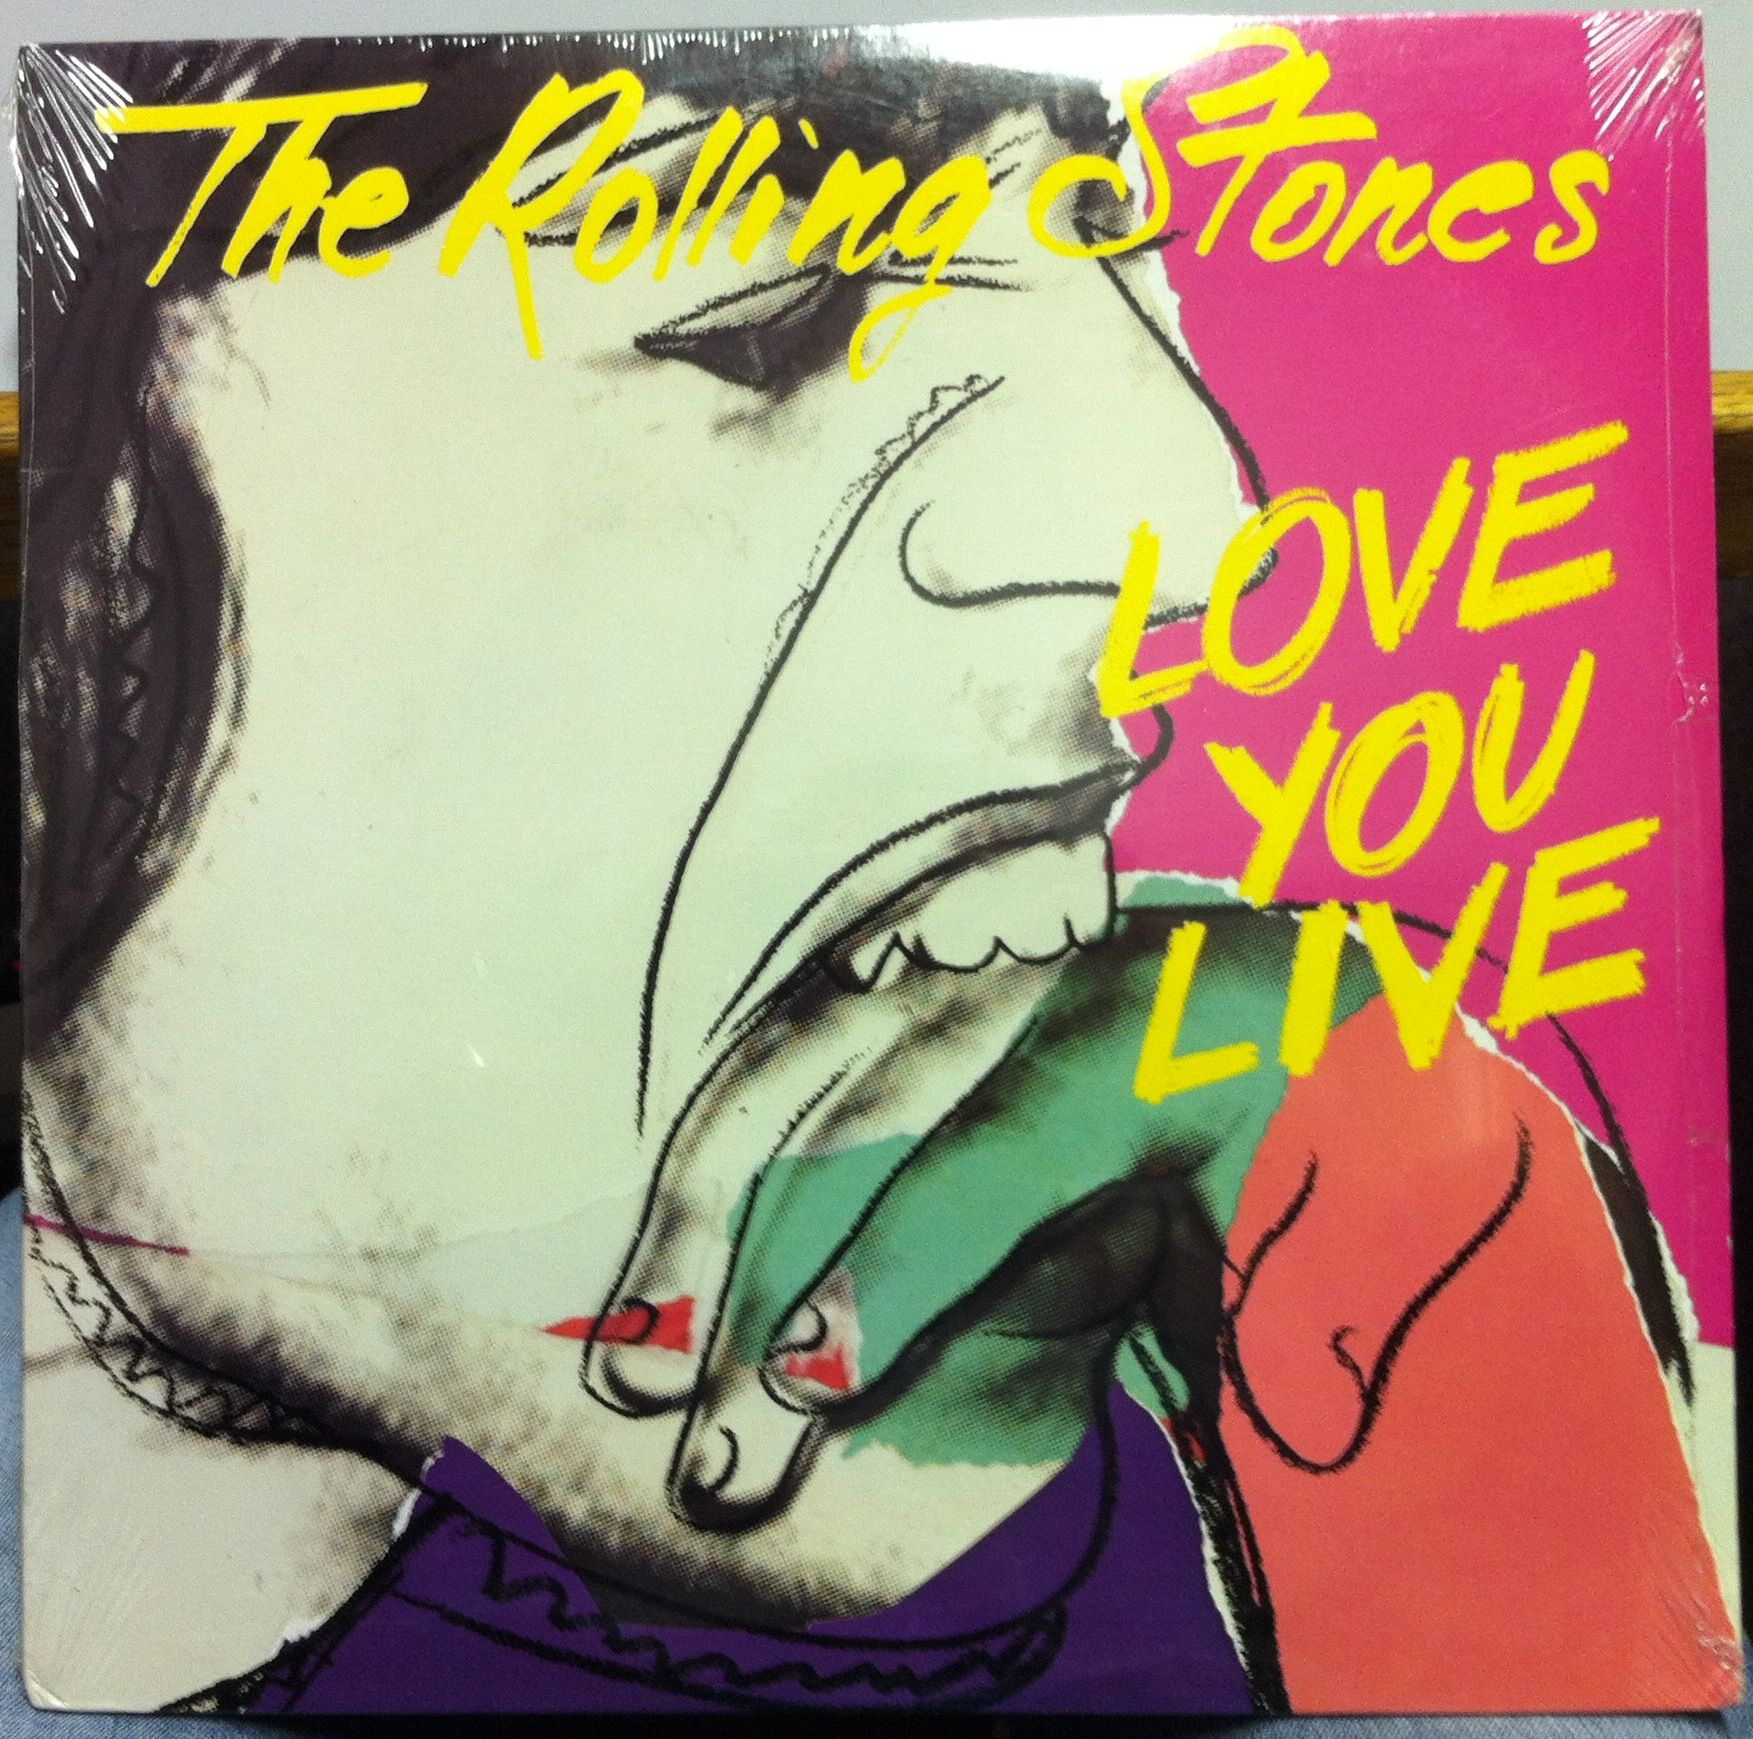 """Rolling Stones """"Love you Live"""" by Andy #Warhol #art #cover  http://artemirabilia.com/artista/andy-warhol/"""